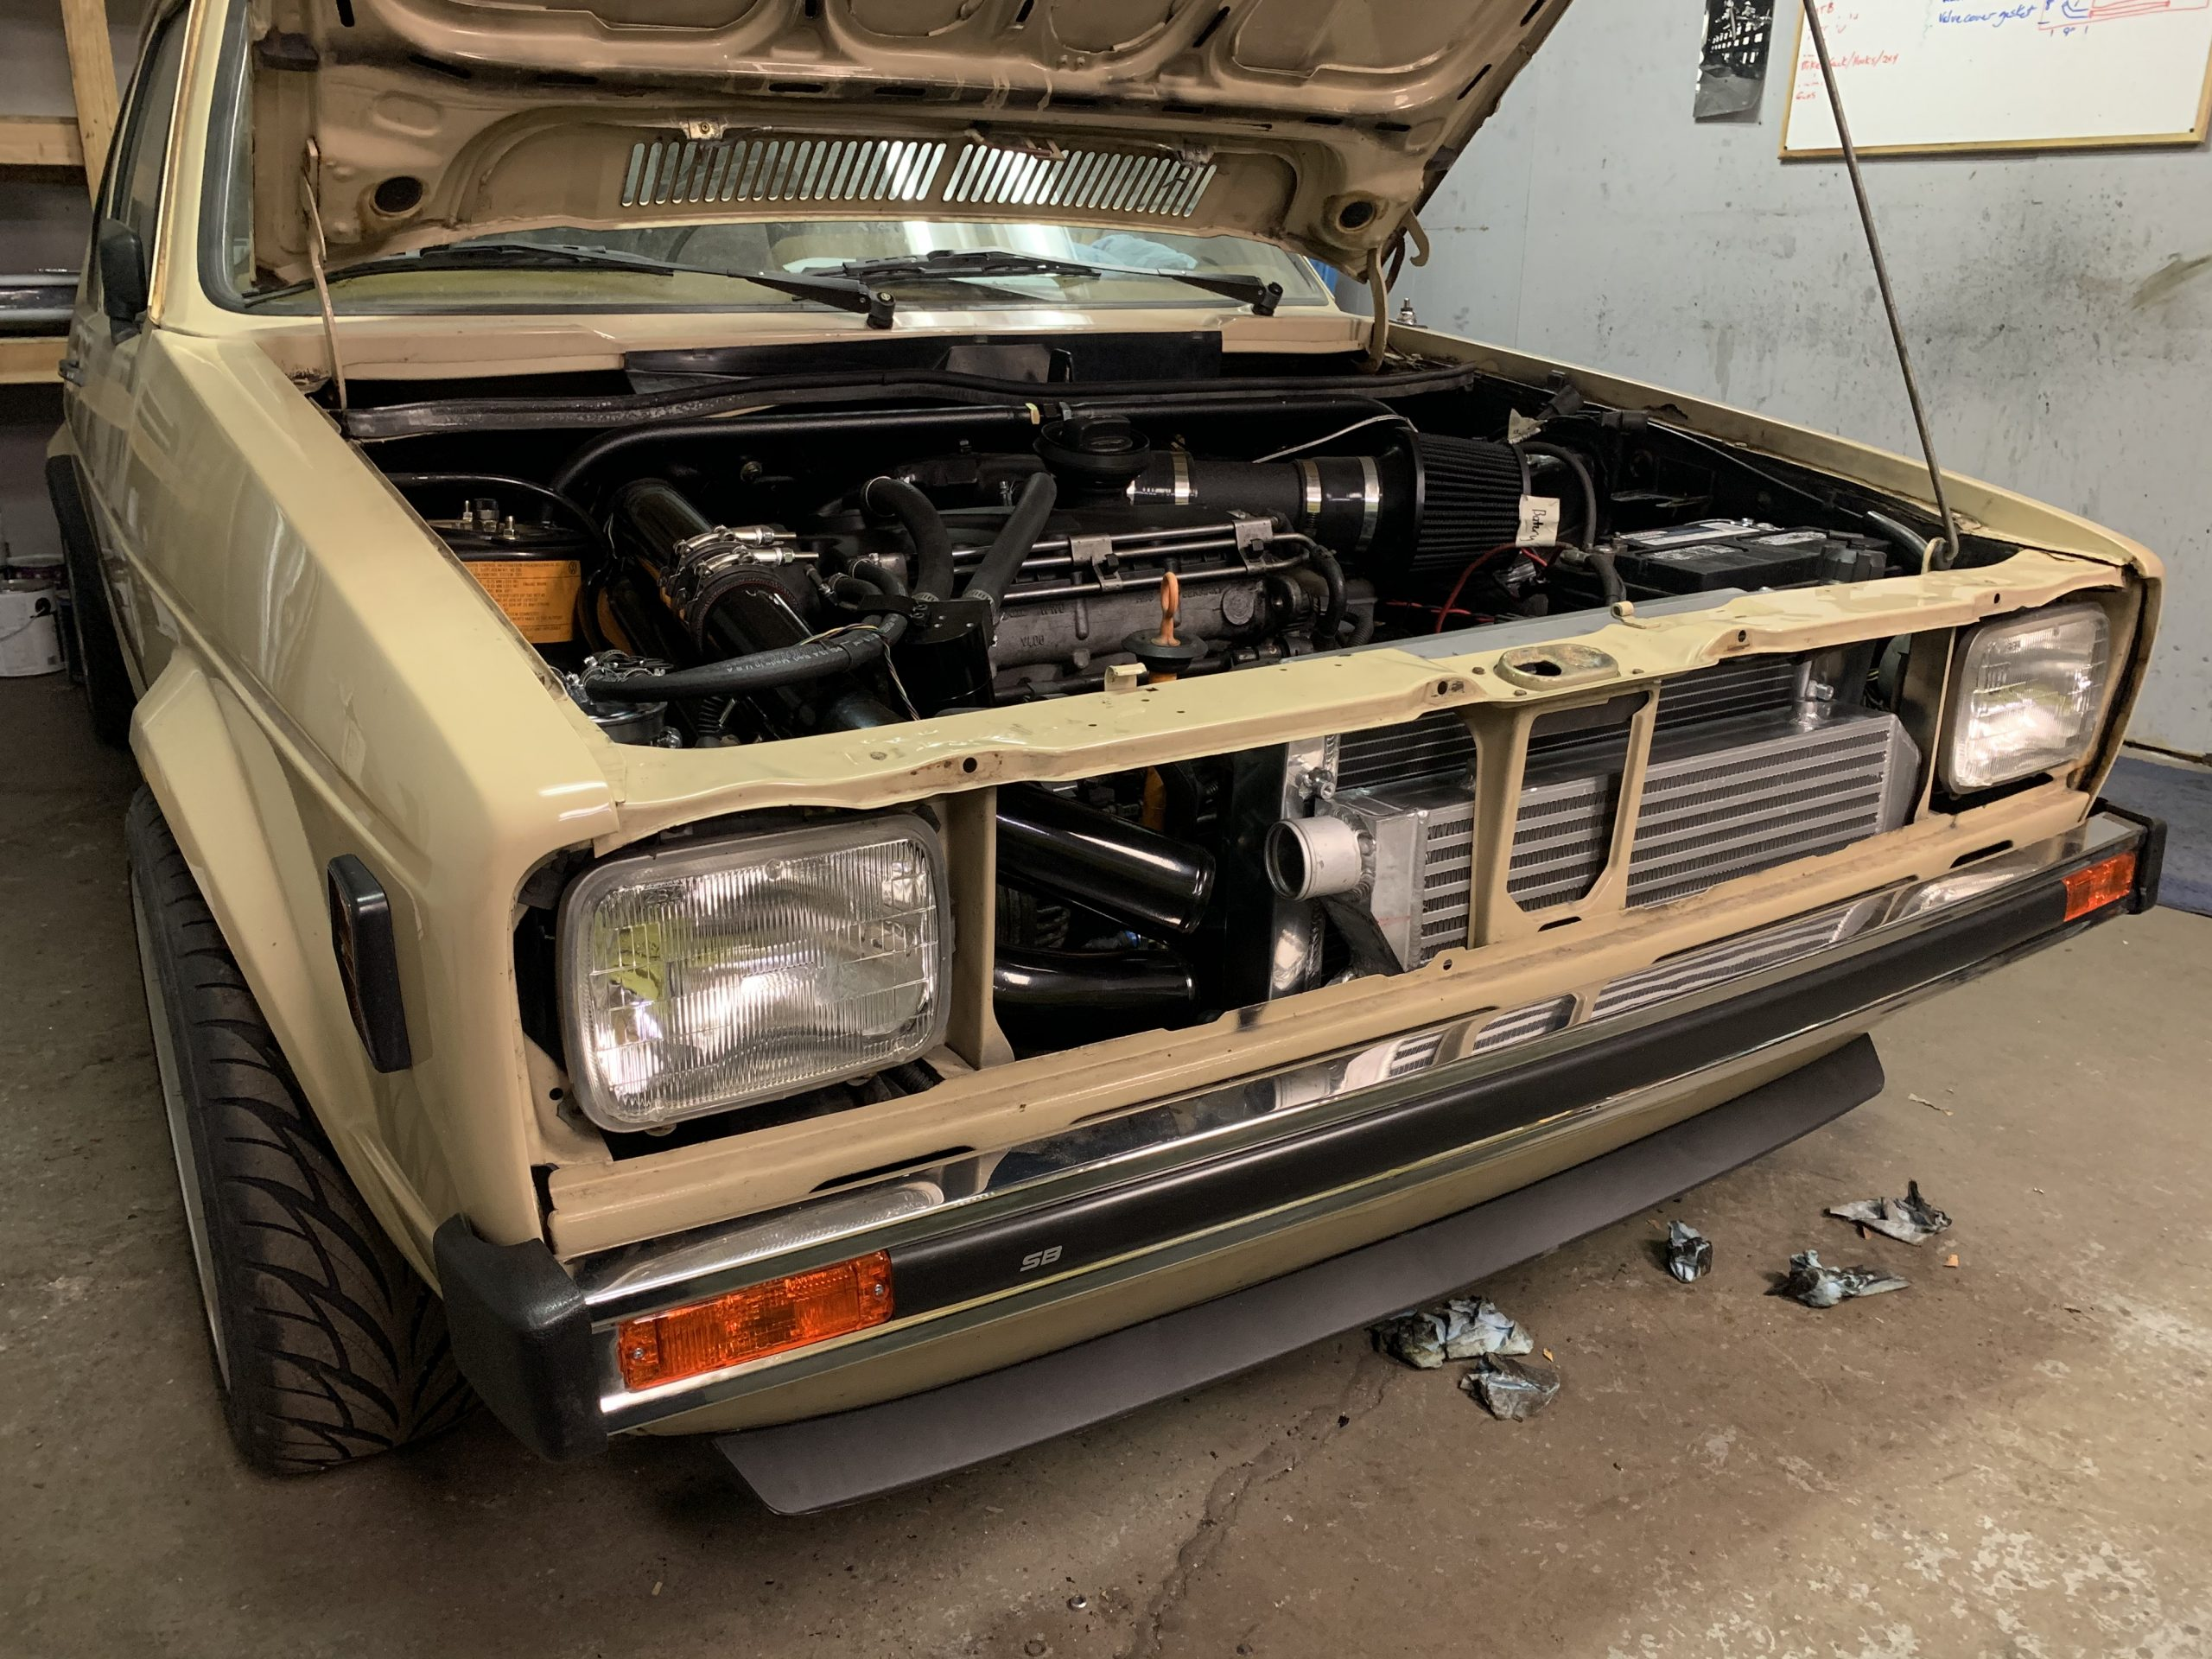 1980 VW Rabbit TDI swap shop Nov 23, 6 56 53 PM